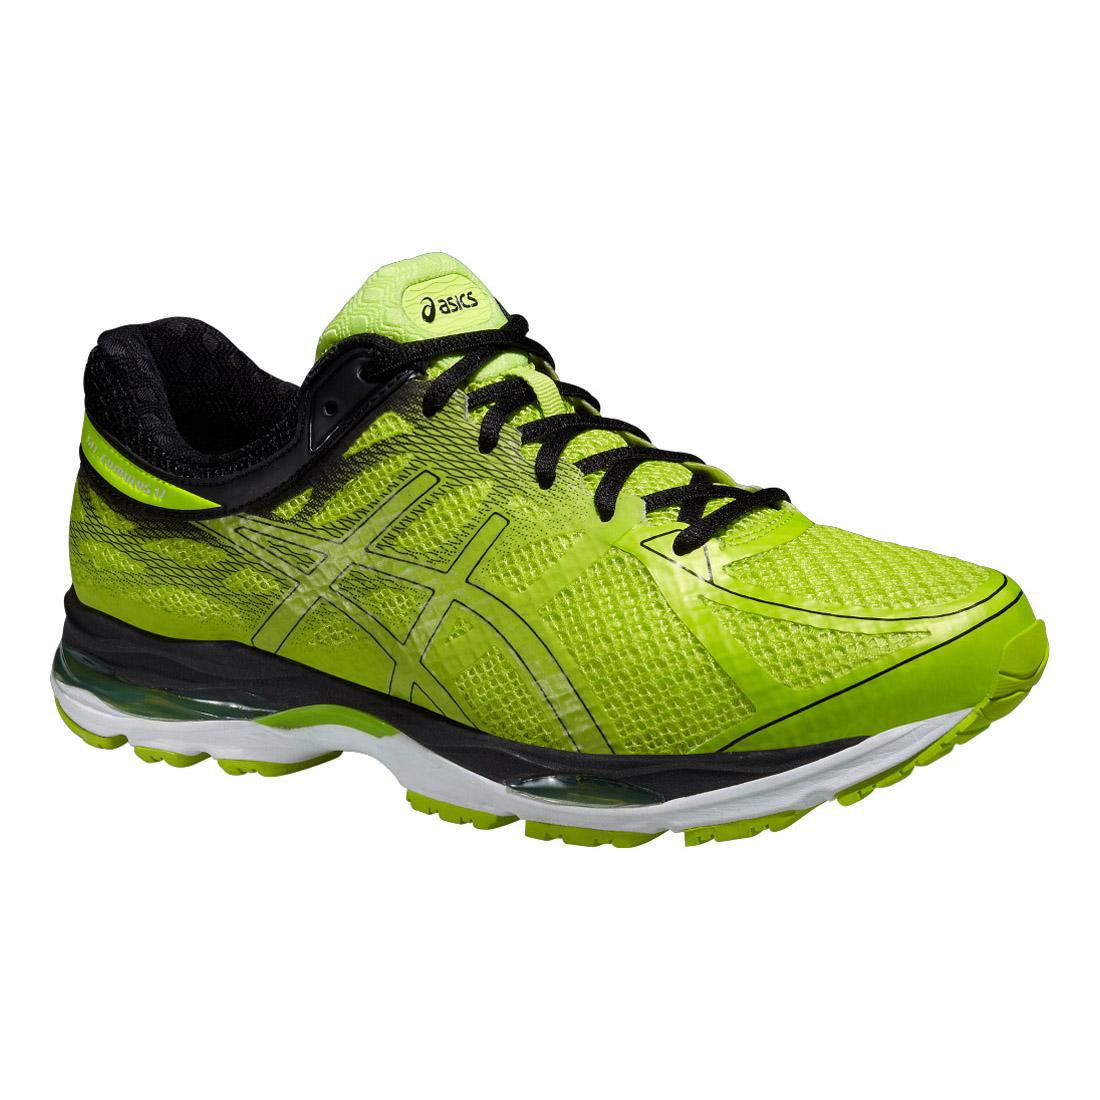 Asics Mens GEL Cumulus 17 Lite Show Running Shoes Yellow